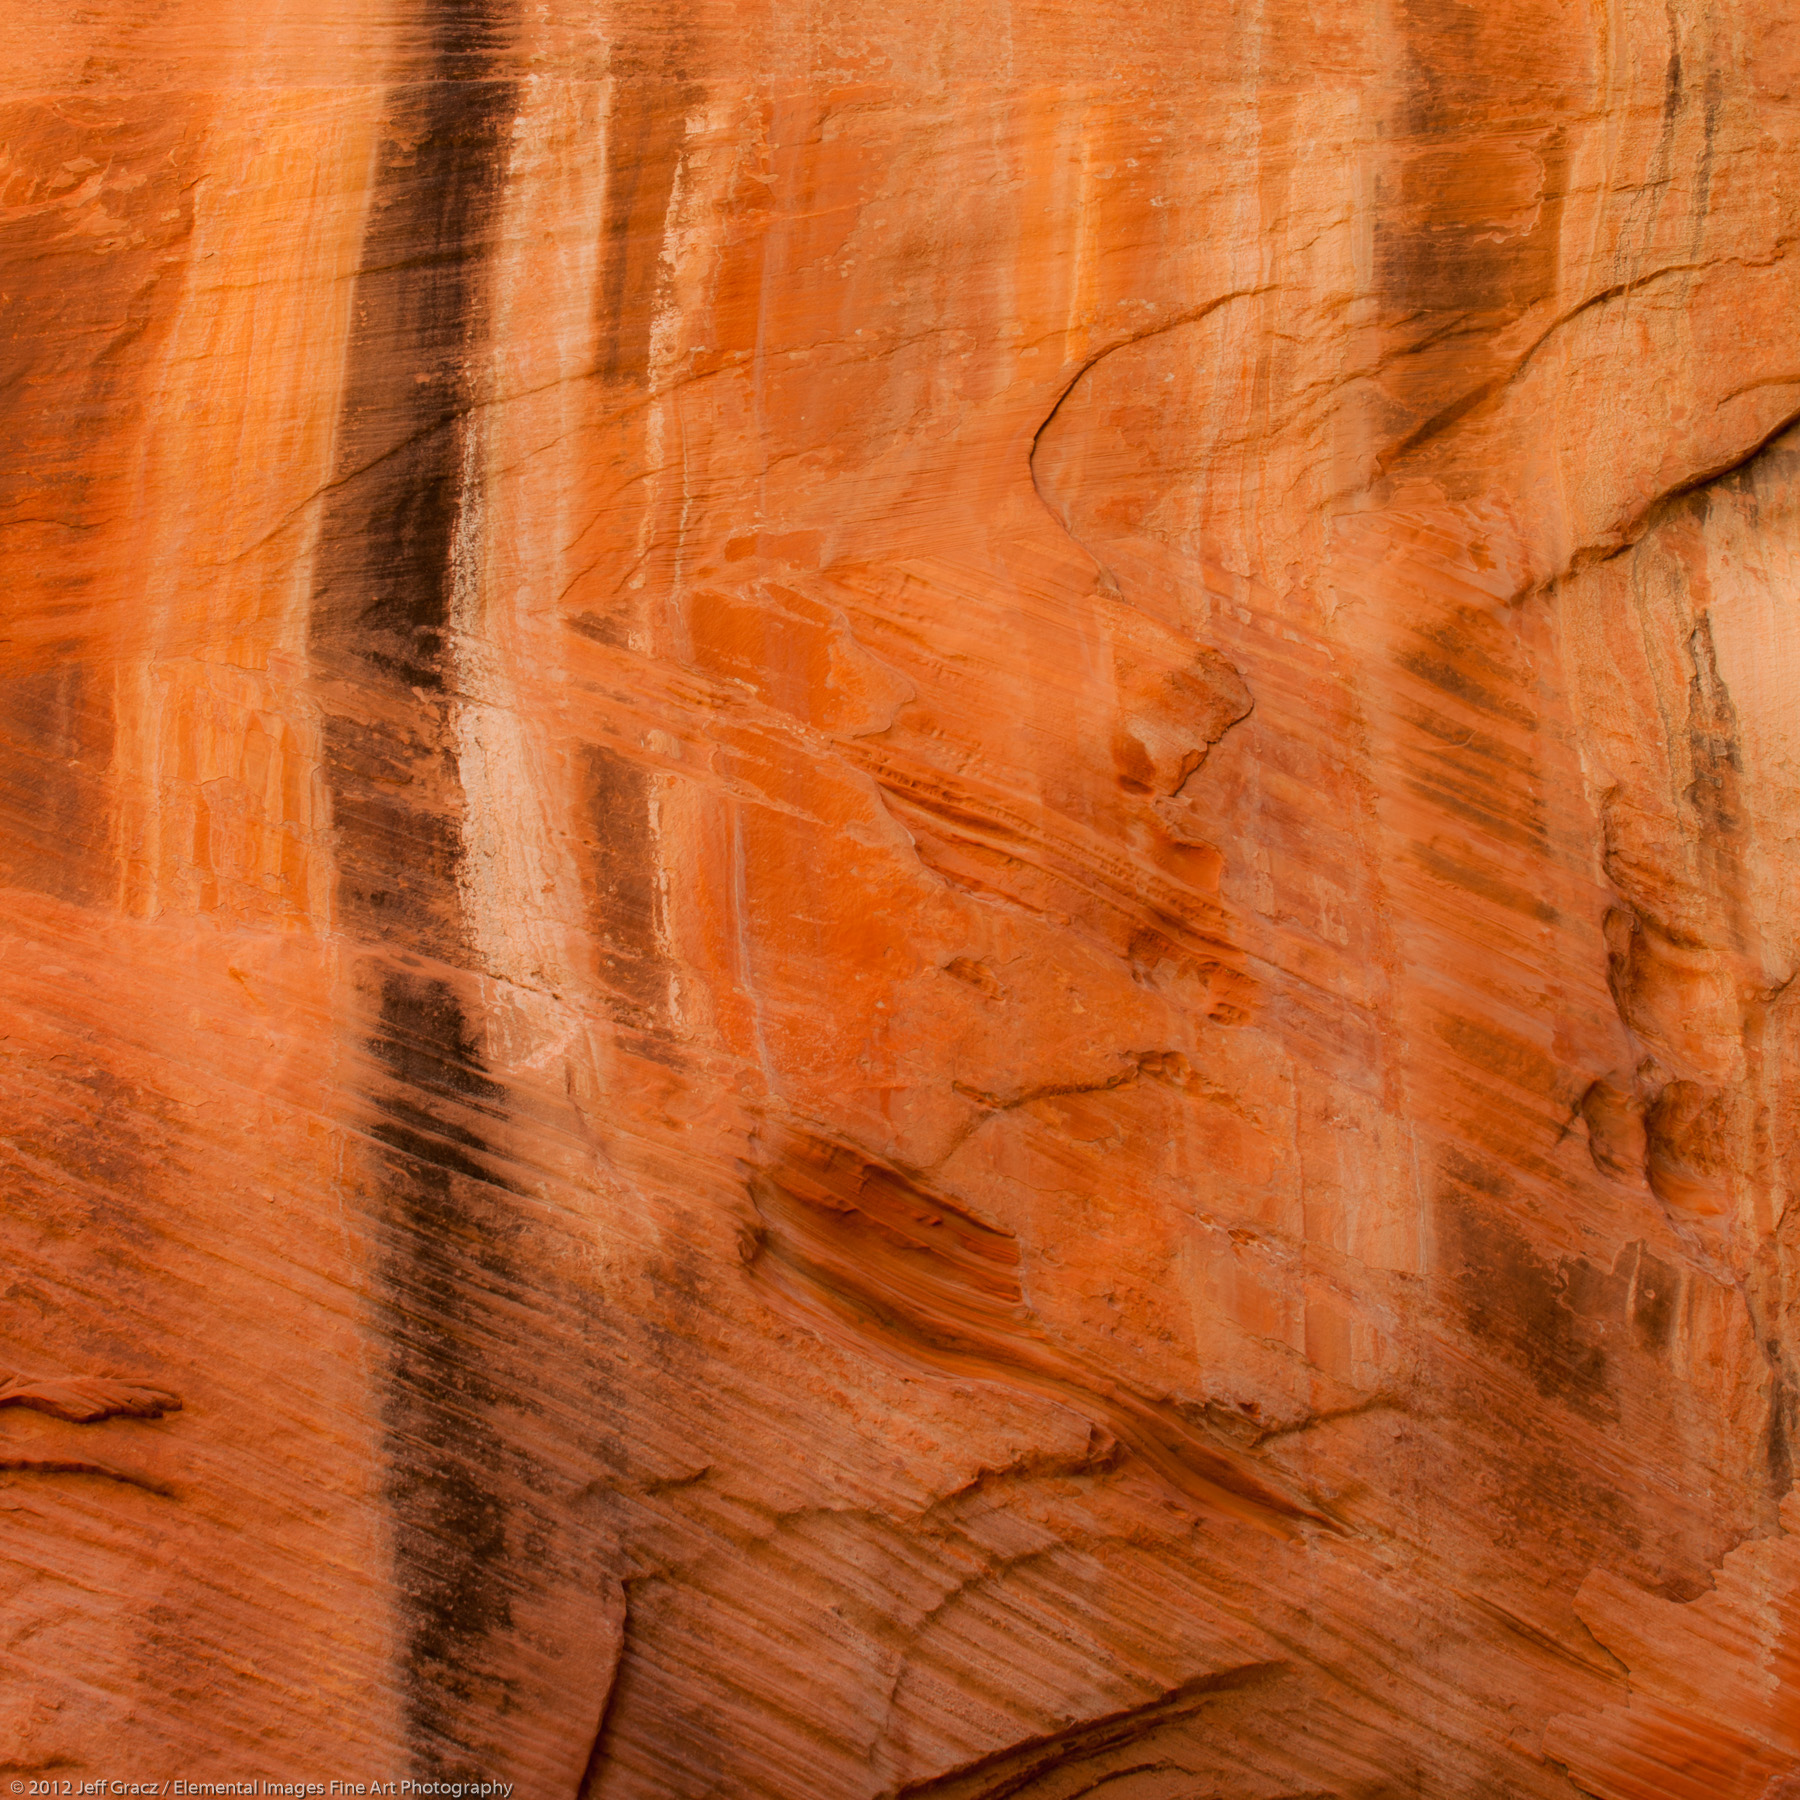 Canyon Wall IV | Zion National Park | UT | USA - © © 2012 Jeff Gracz / Elemental Images Fine Art Photography - All Rights Reserved Worldwide